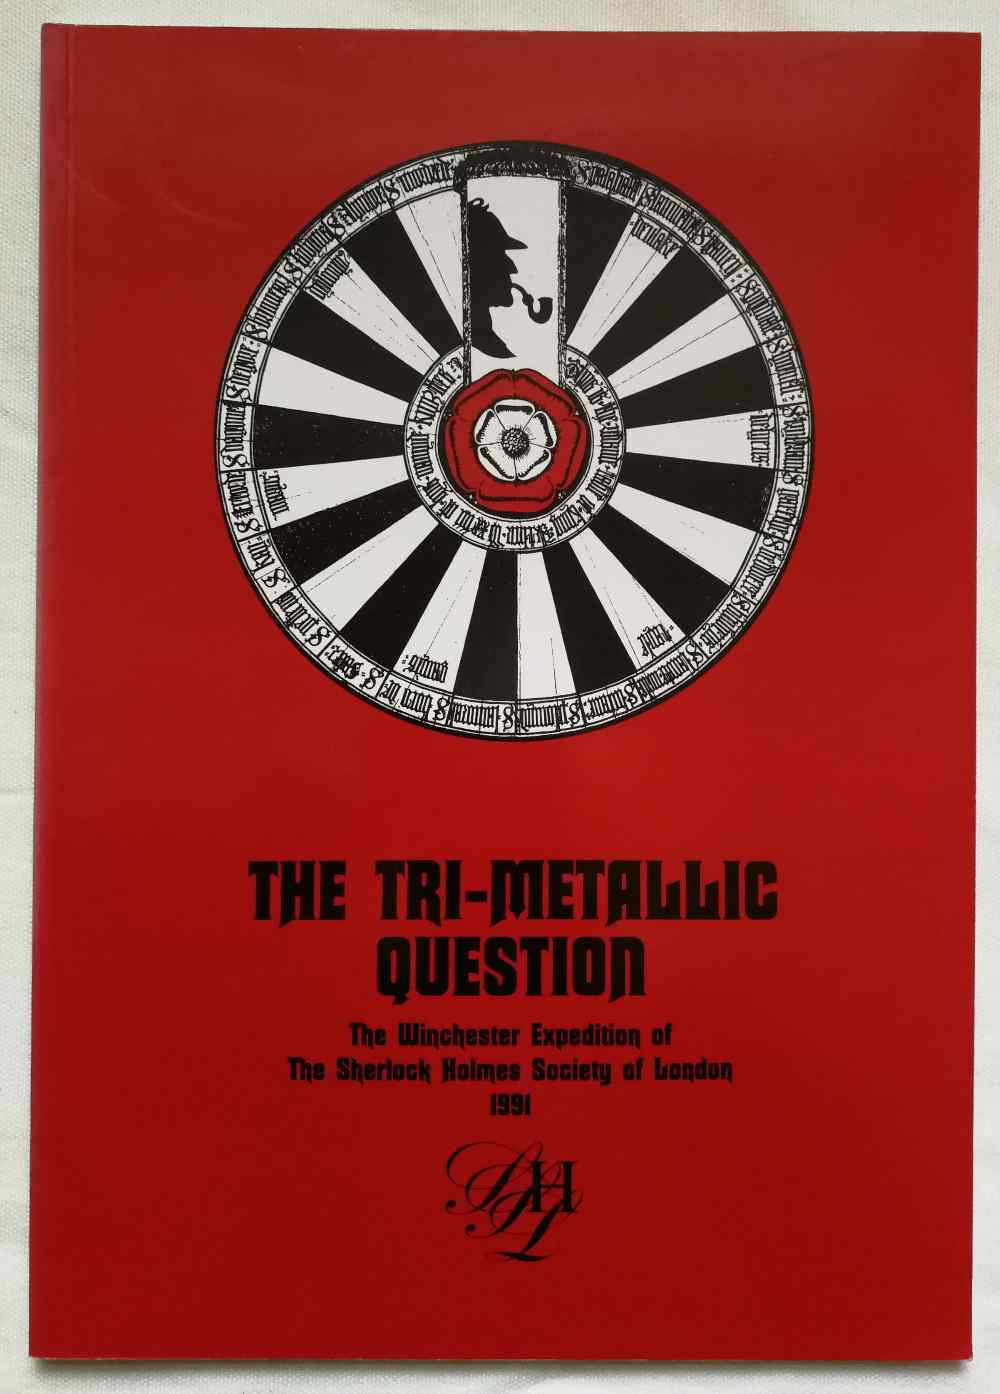 The tri-metallic question : the handbook of the Winchester expedition of the Sherlock Holmes Society of London 30th August - 1st September 1991